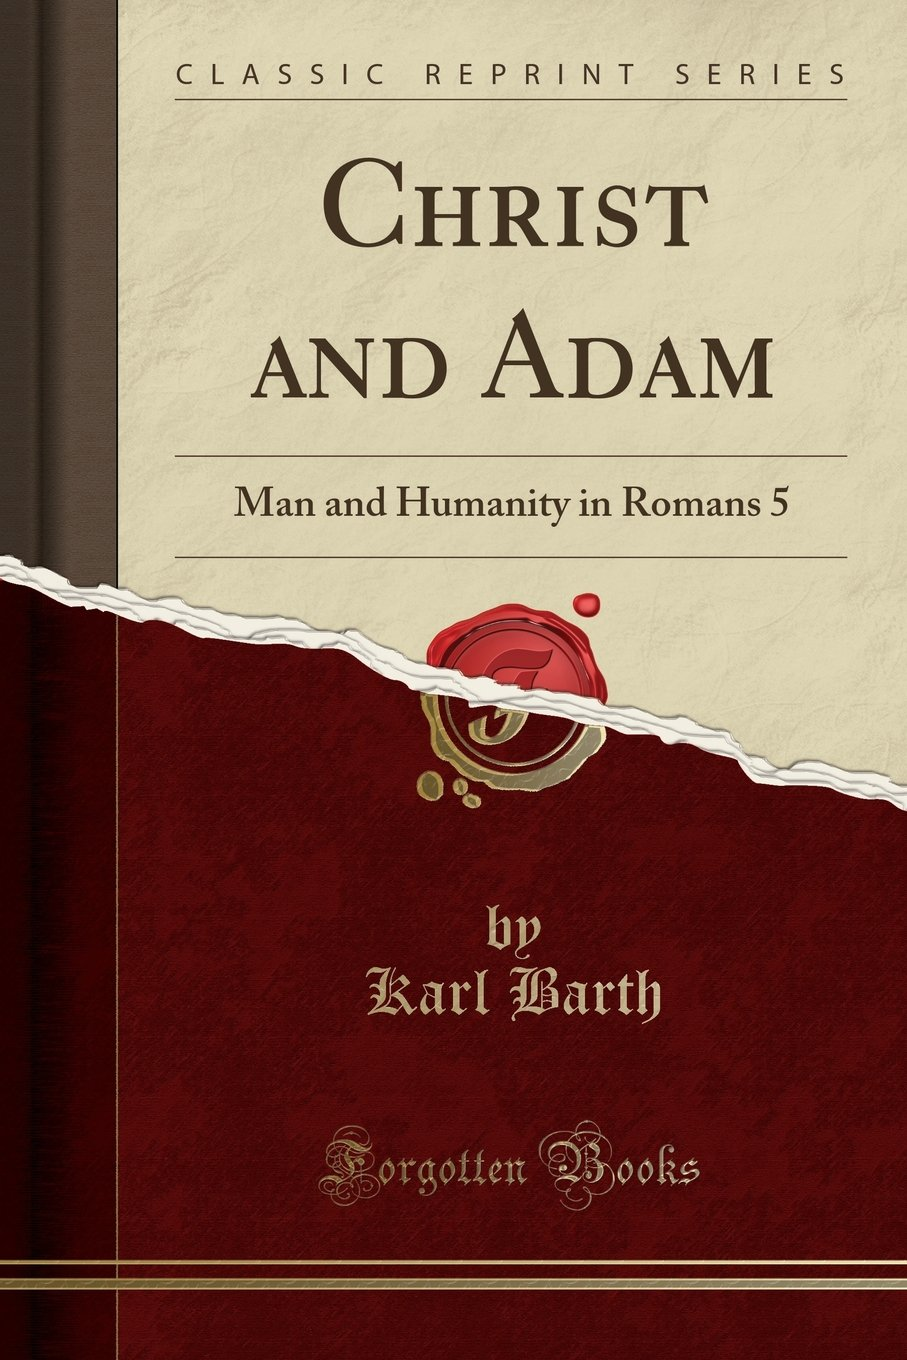 Christ and Adam: Man and Humanity in Romans 5 (Classic Reprint): Karl  Barth: 9781331441472: Amazon.com: Books